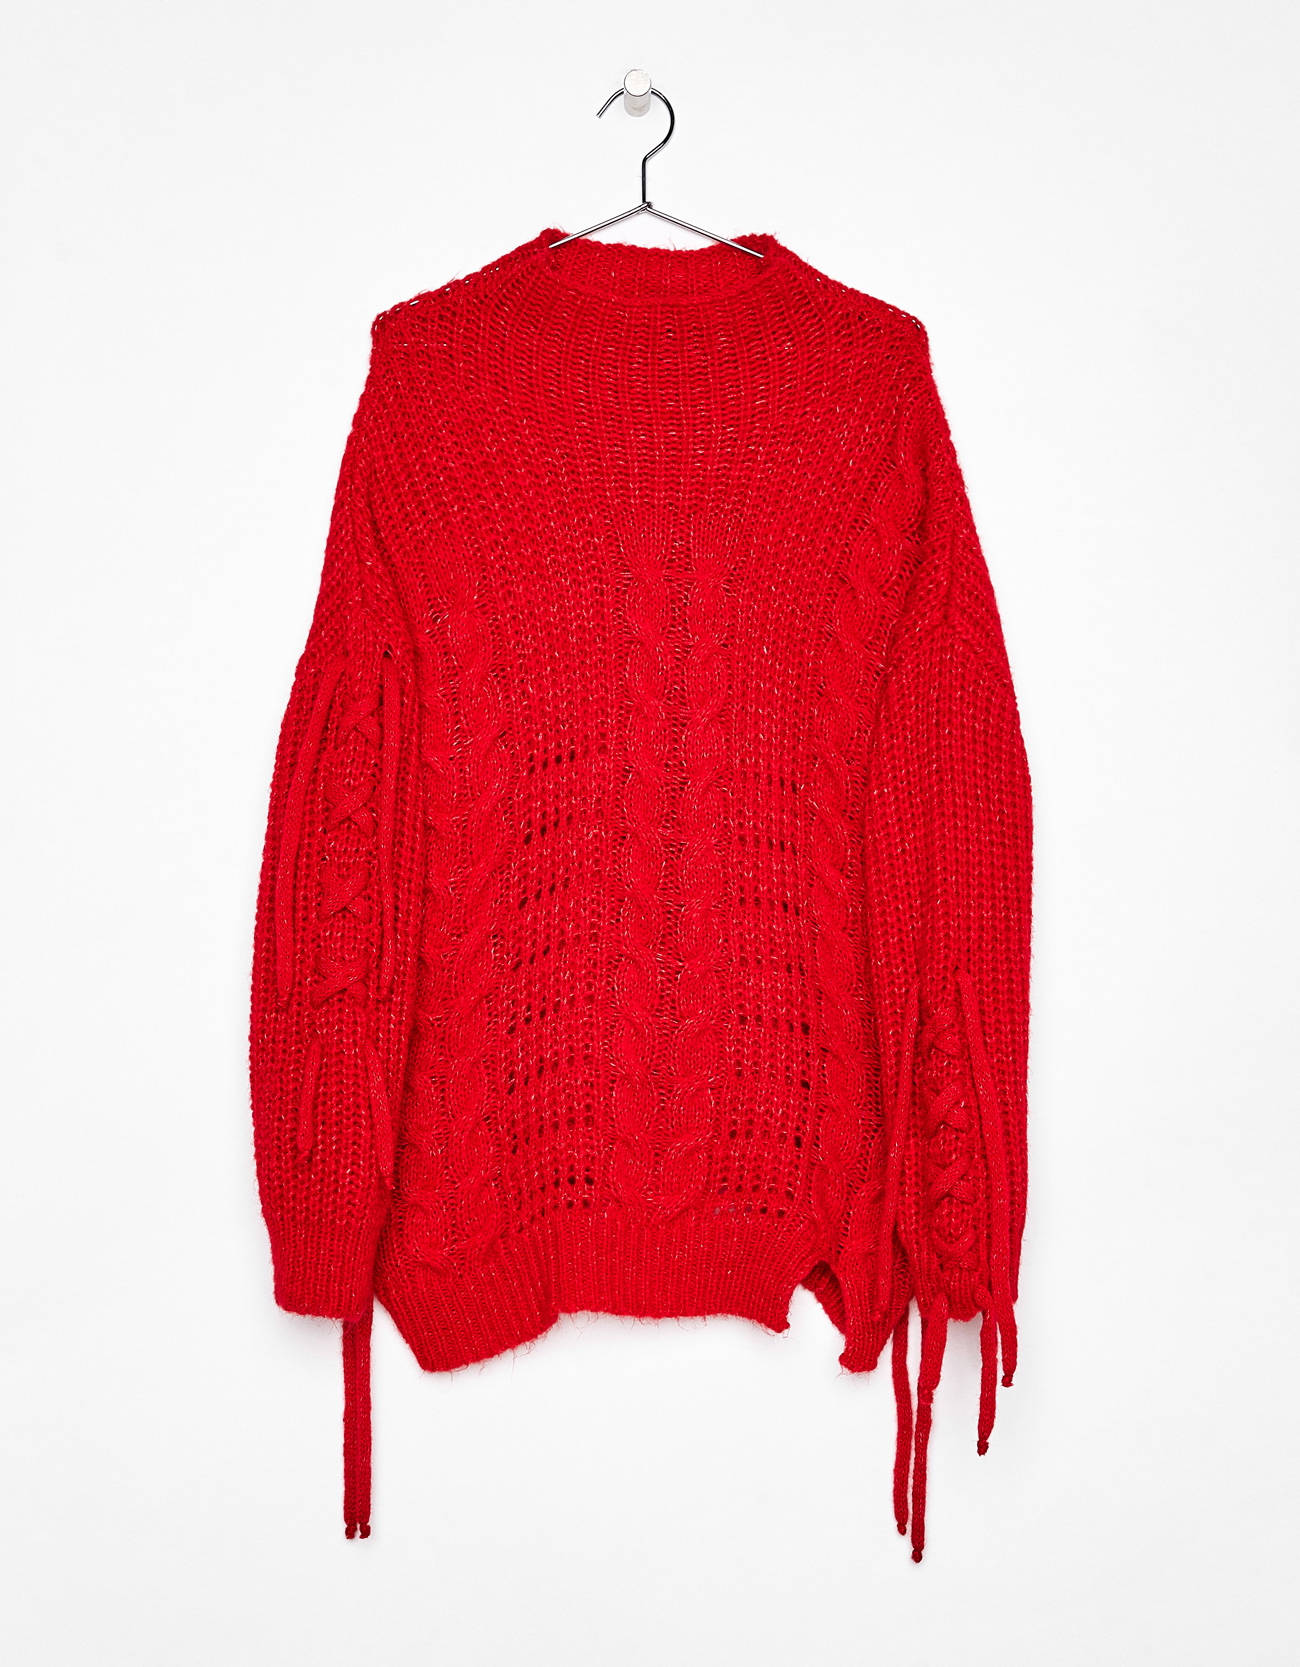 Cable-knit sweater with straps - Red - Bershka Spain